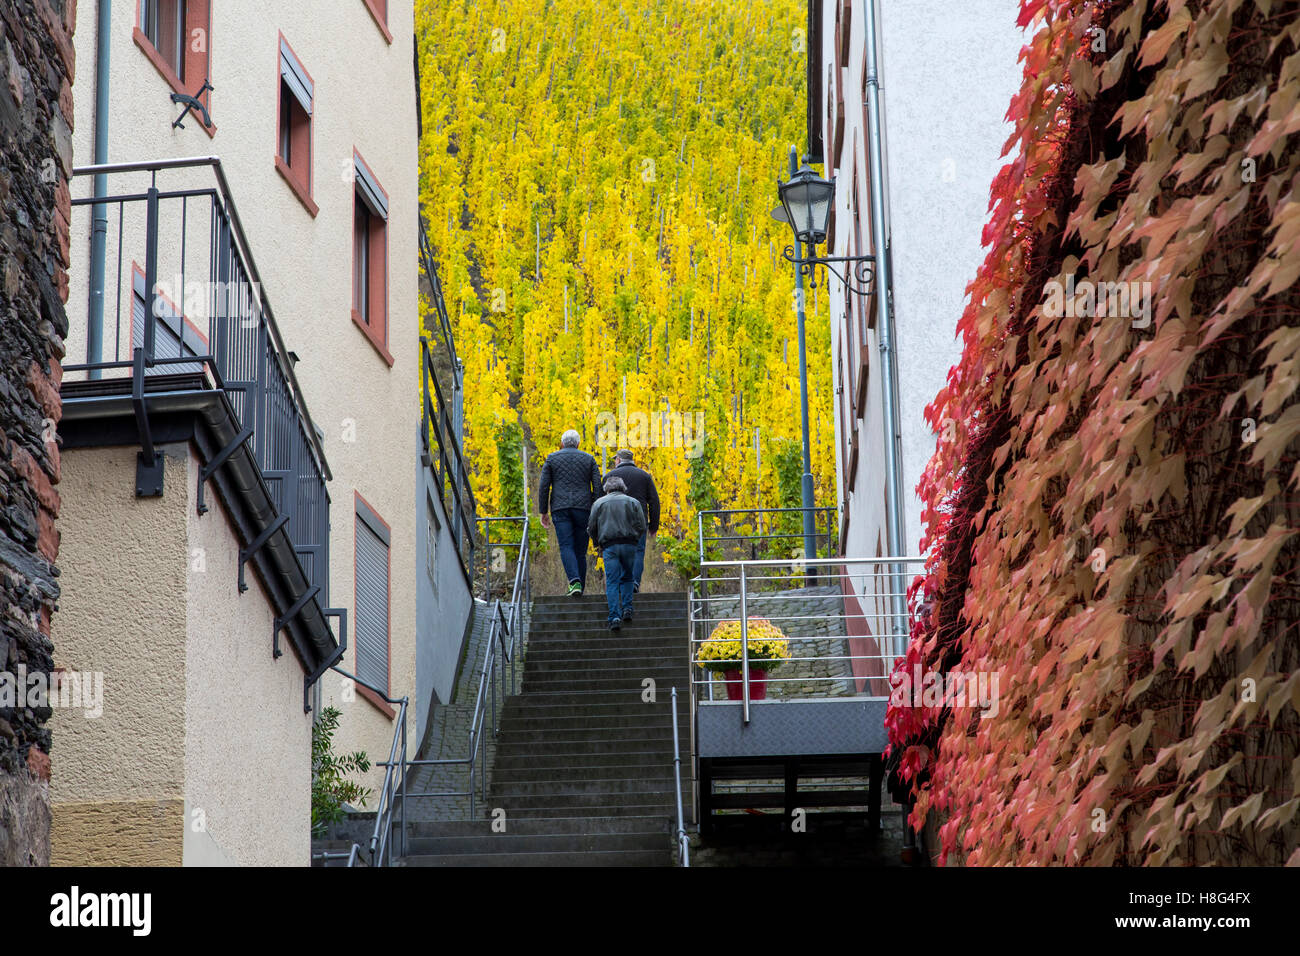 Moselle valley, city of Bernkastel-Kues, Germany, stairway out of the old town into the vineyards, Stock Photo